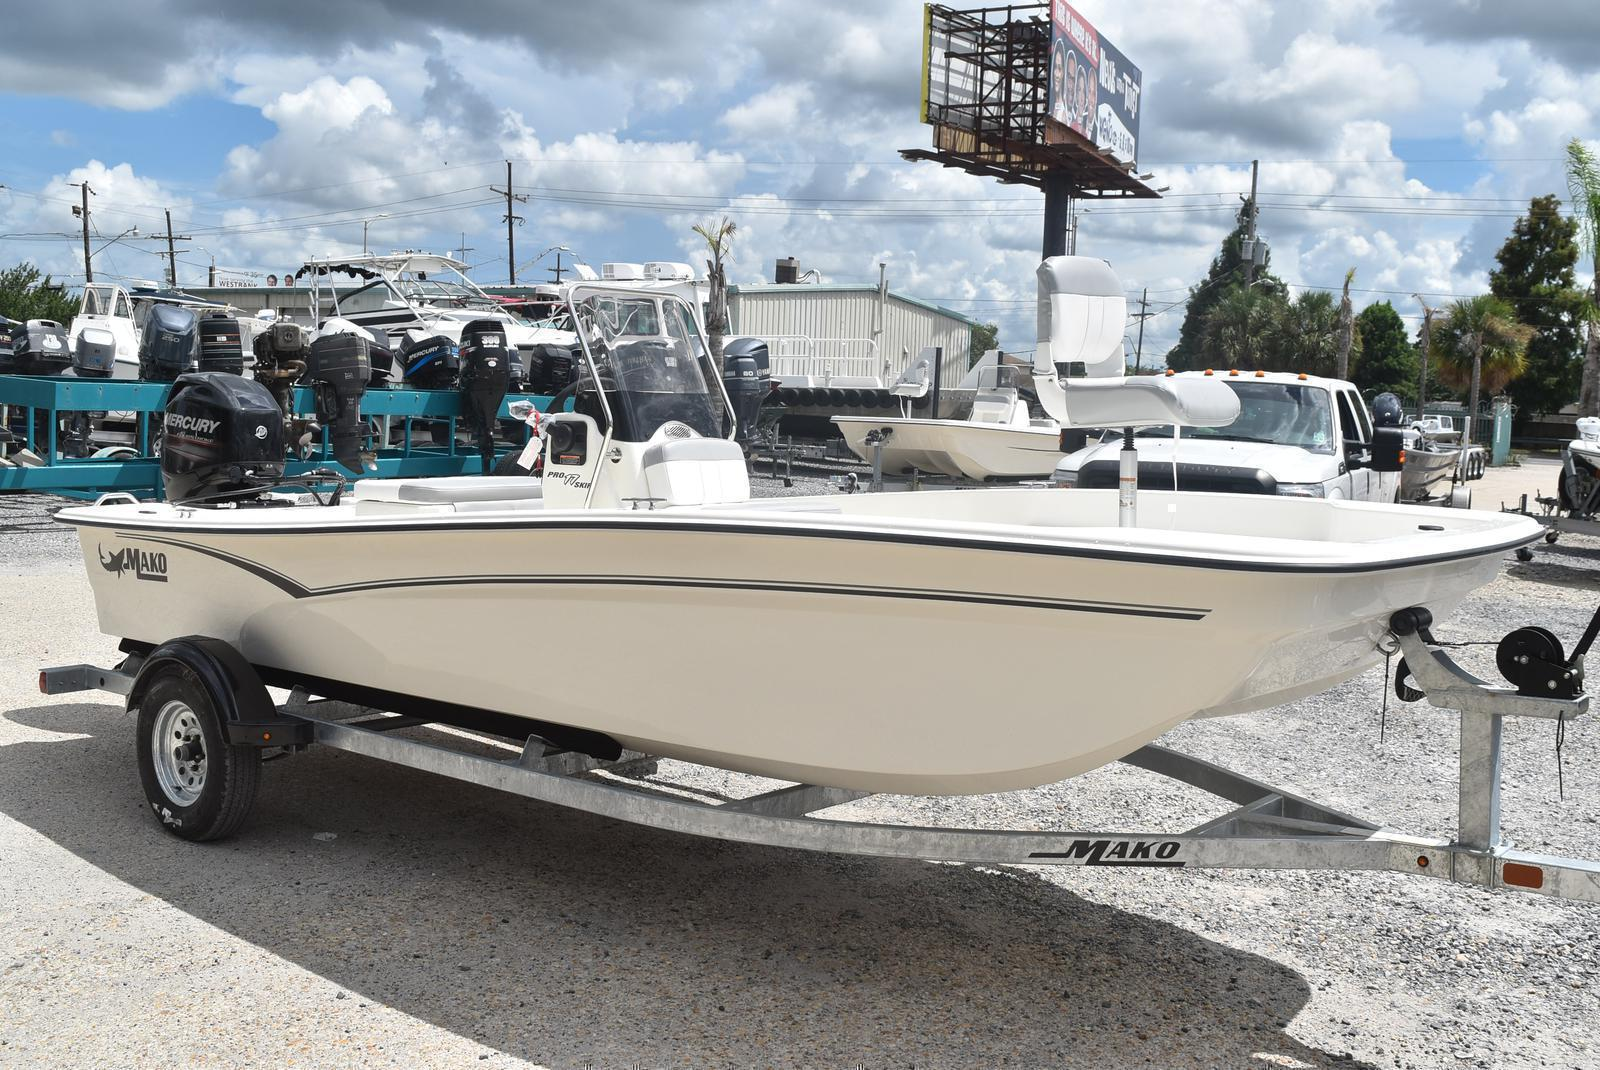 2020 Mako boat for sale, model of the boat is Pro Skiff 17, 75 ELPT & Image # 691 of 702